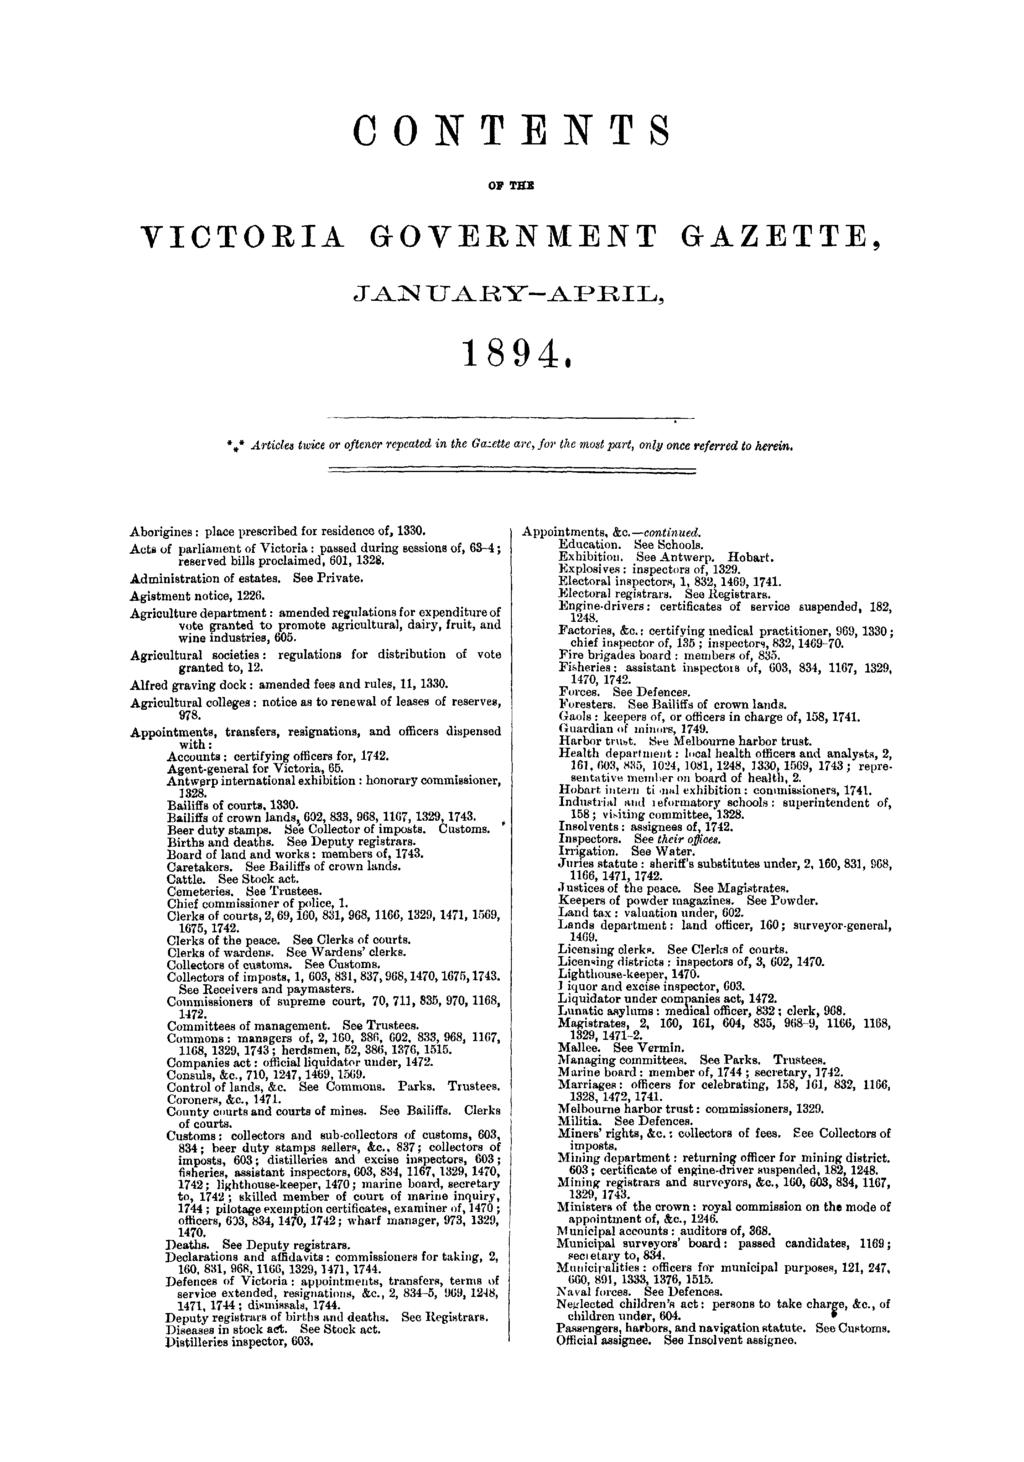 Fascinating Contents Op Ths Victoria Government Jan Victorian Governement Gazette Pdf Victorian Trading Company Furniture Victorian Trading Company Jobs houzz 01 Victorian Trading Company